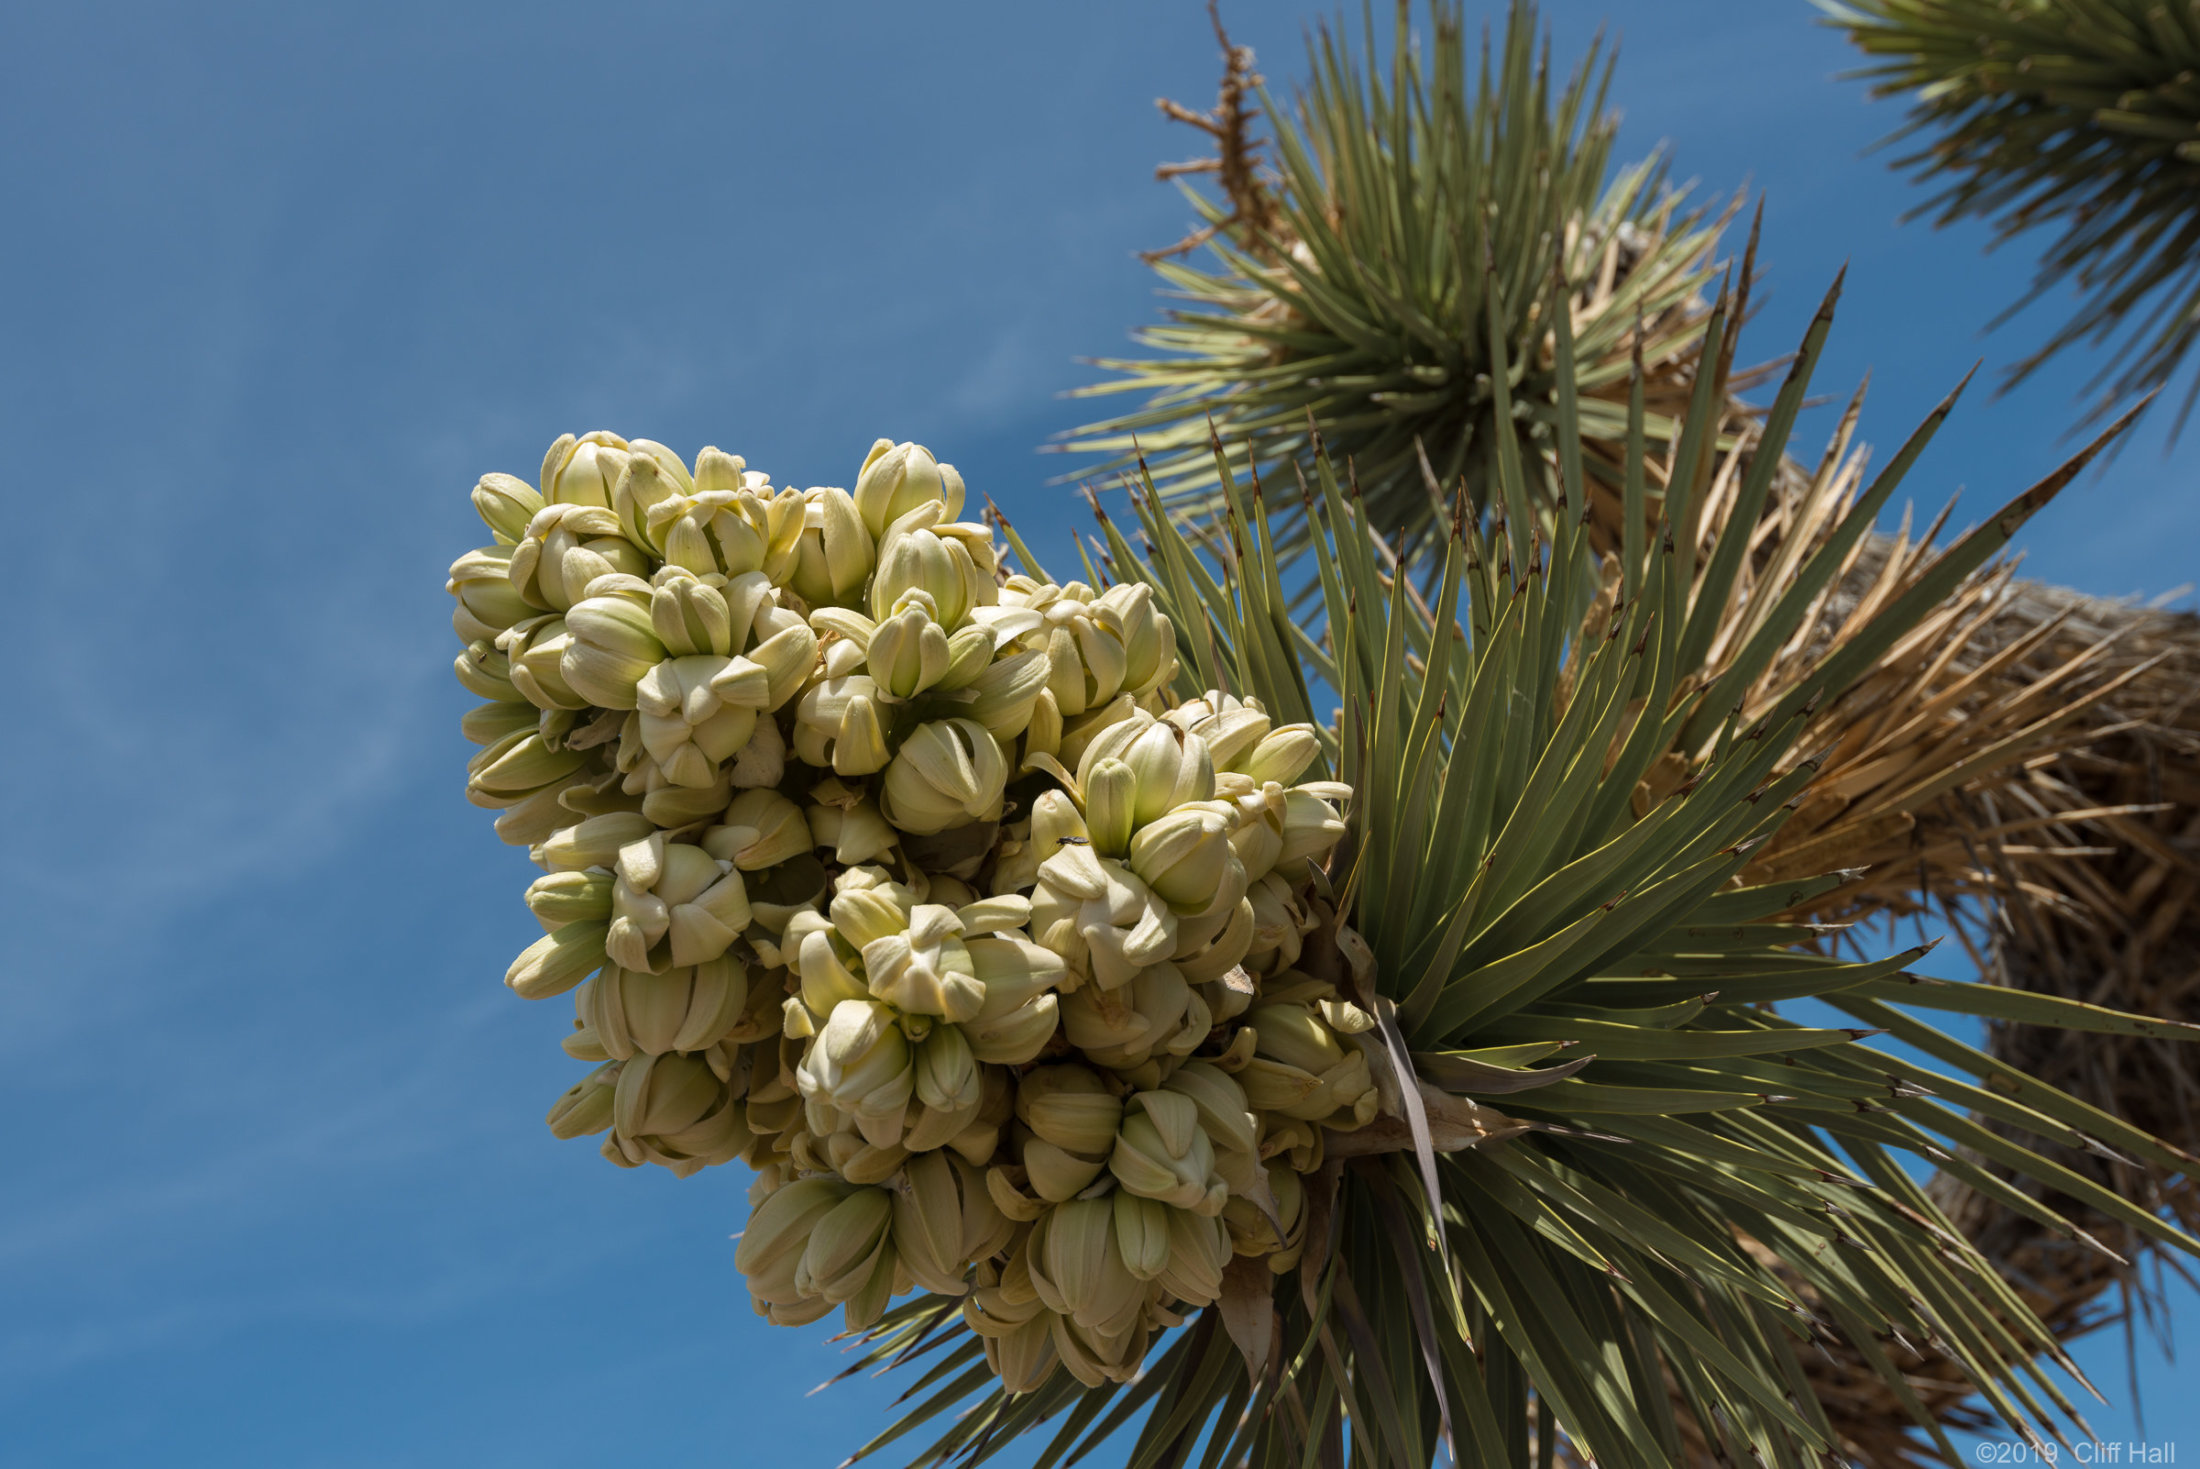 Joshua Tree blossoms